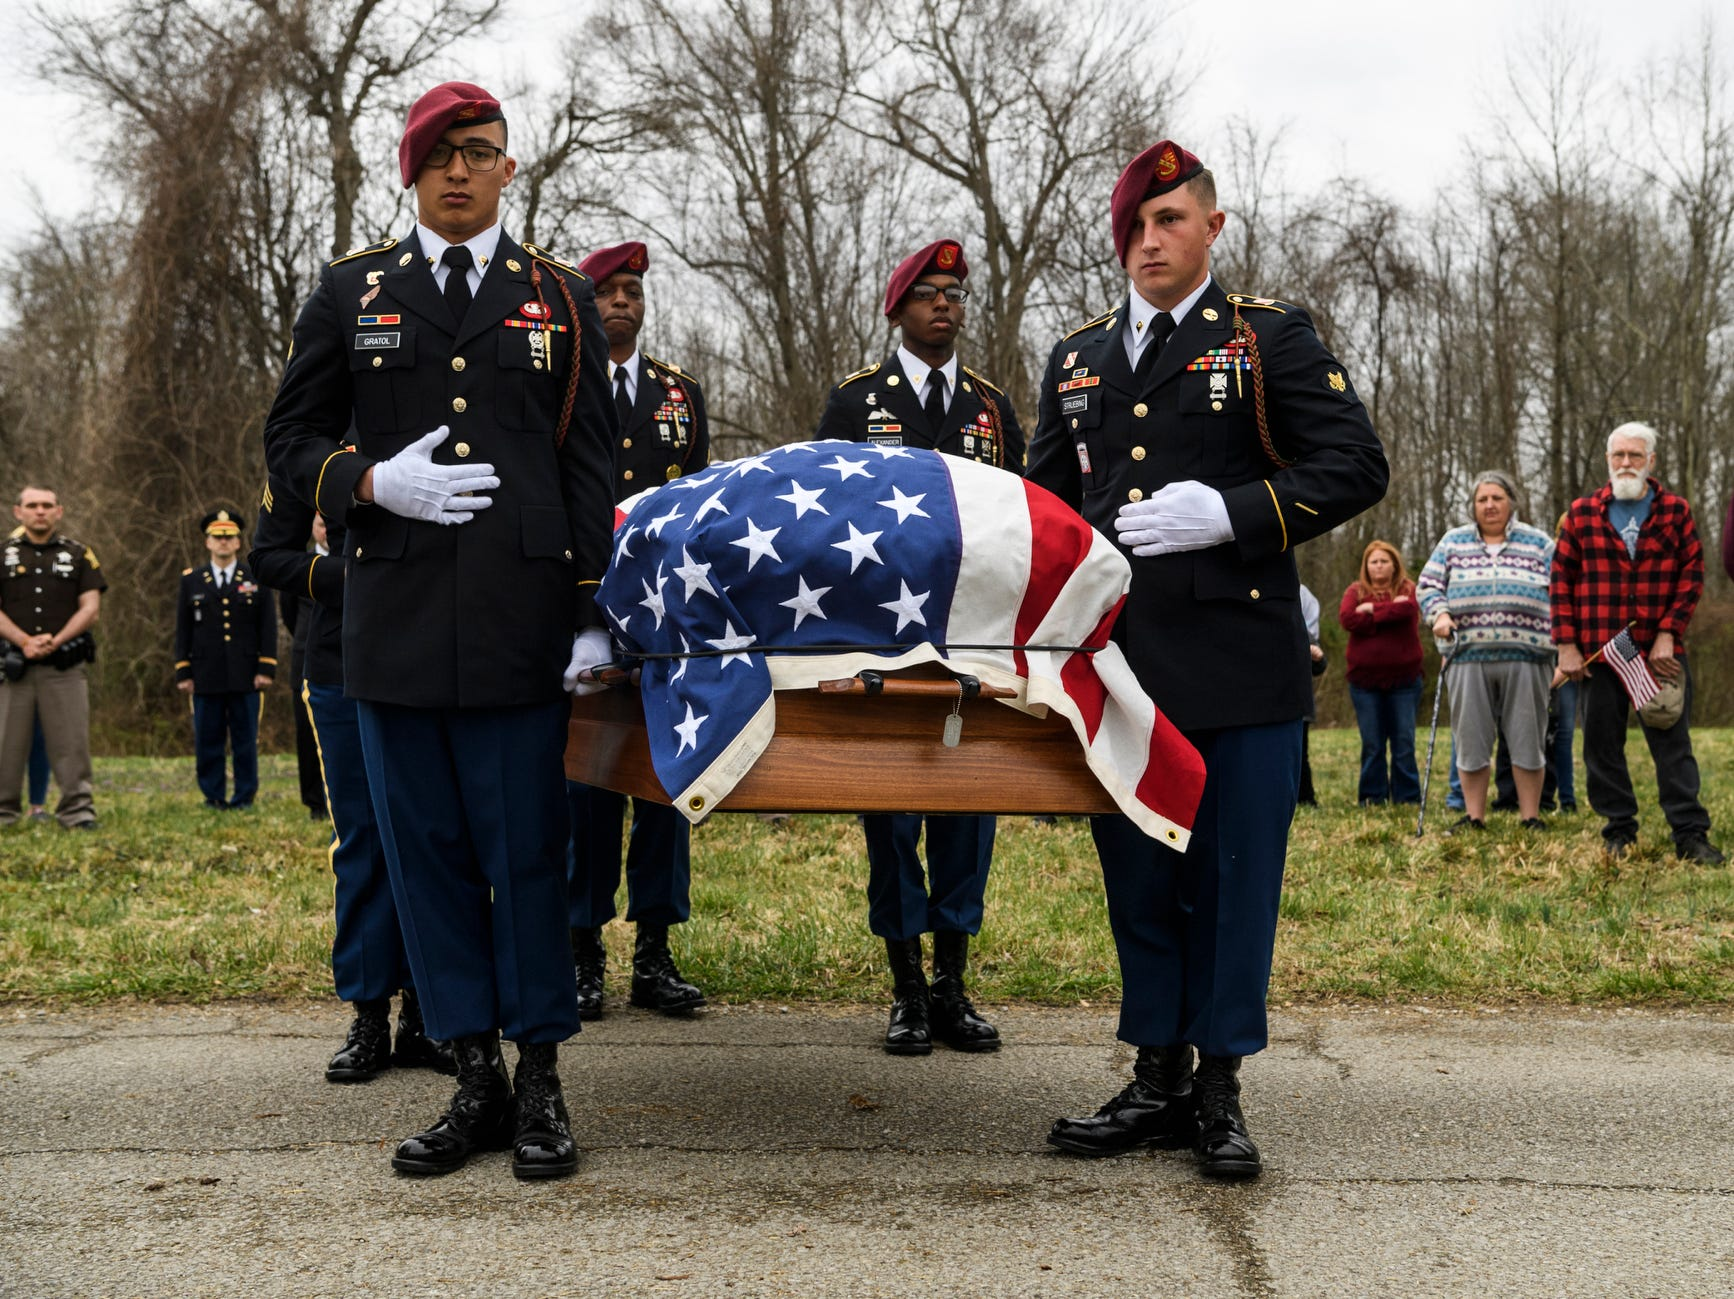 Members of the 319th 82nd Airborne Division Artillery of Fort Bragg, N.C., carefully escort the coffin of Pvt. 1st Class Clifford M. Mills to his burial plot at Calvary Cemetery in Troy, Ind., Saturday, March 30, 2019. Pvt. Mills was declared missing in action 75 years ago, while fighting in Germany during World War II.